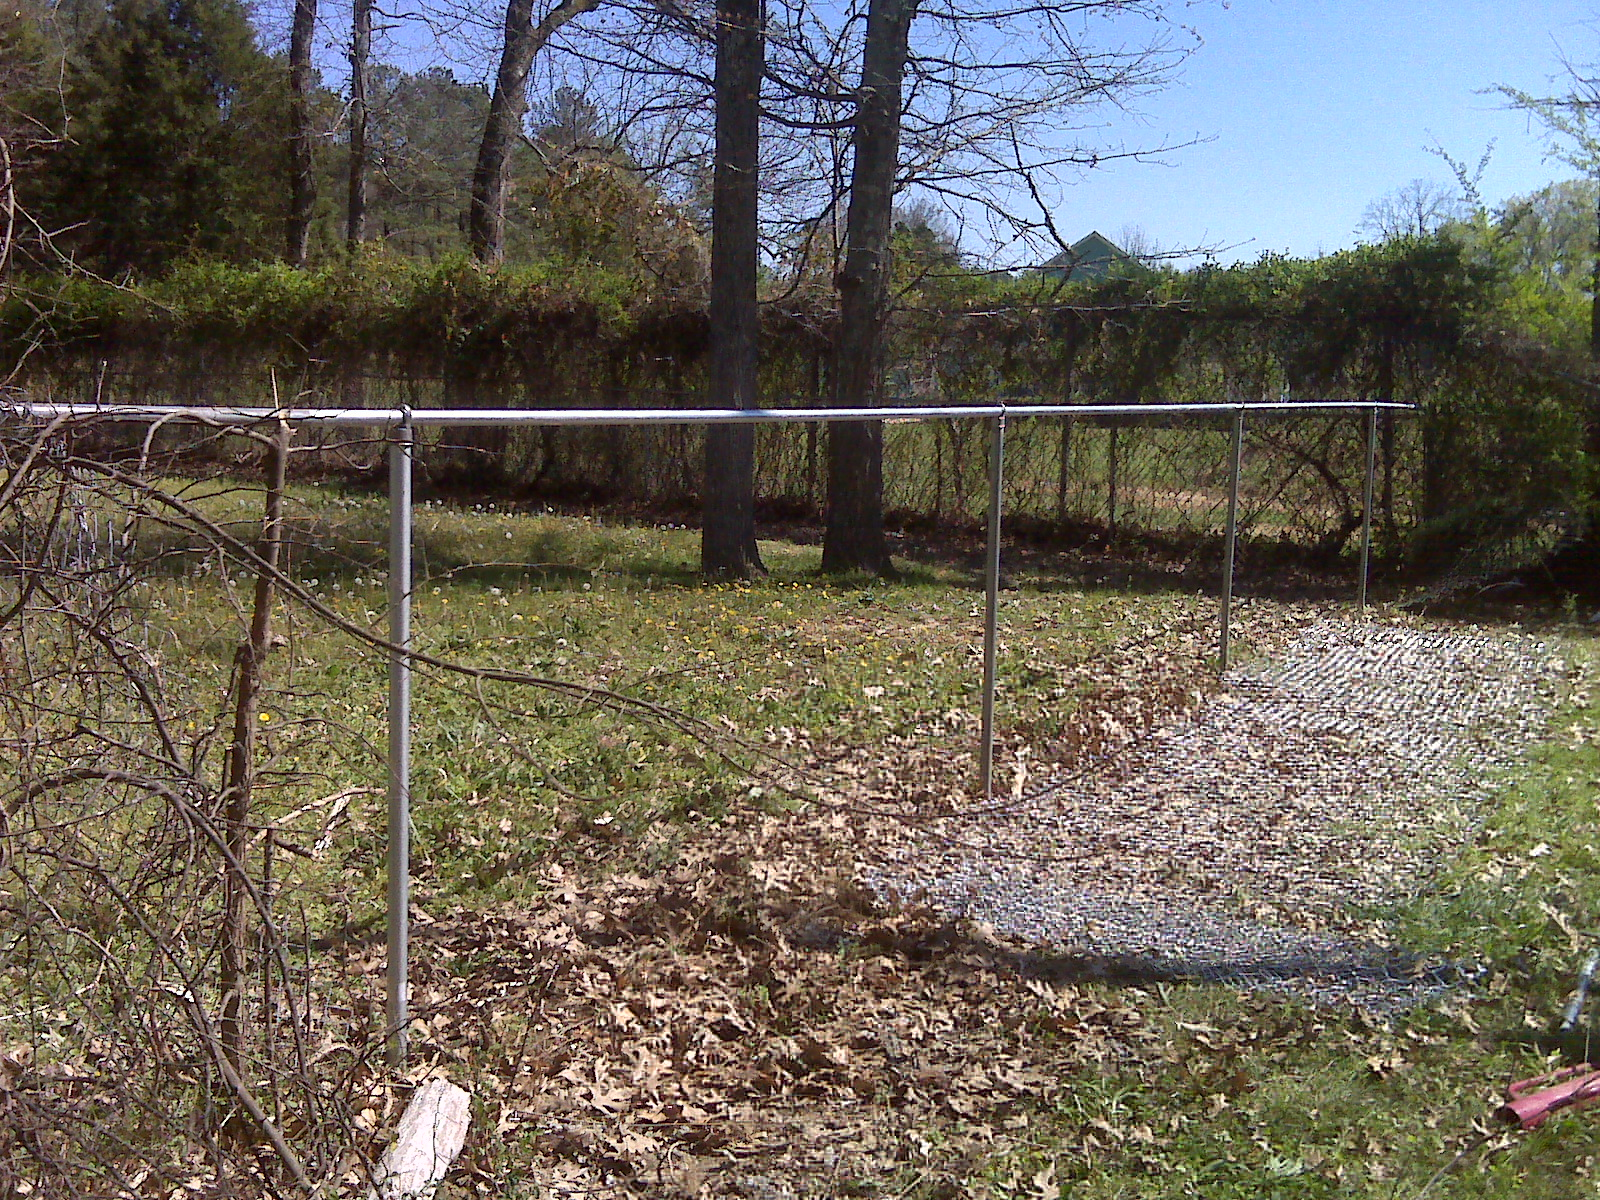 The Birmingham Handyman Chain Link Fence Replacement